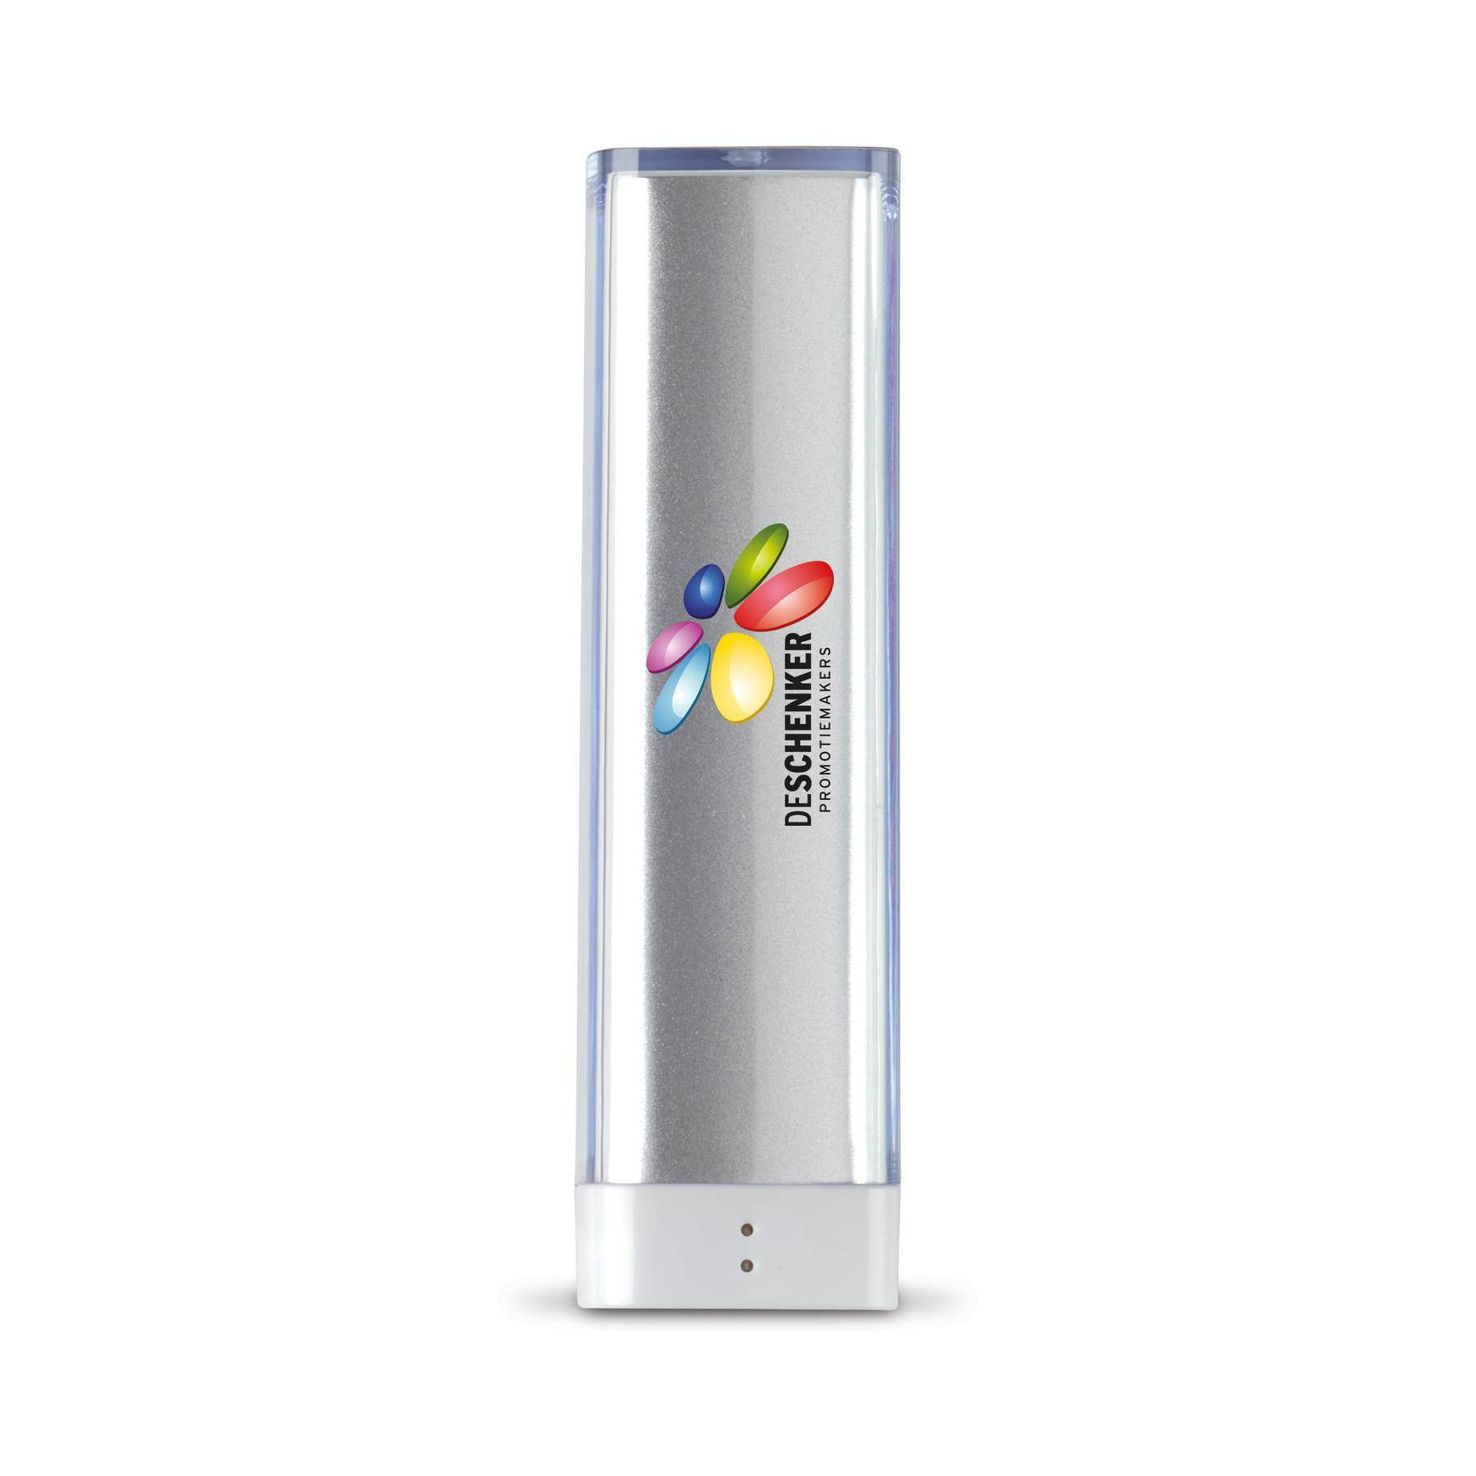 Zilvere Powerbank | Transparant | 2200 mAh